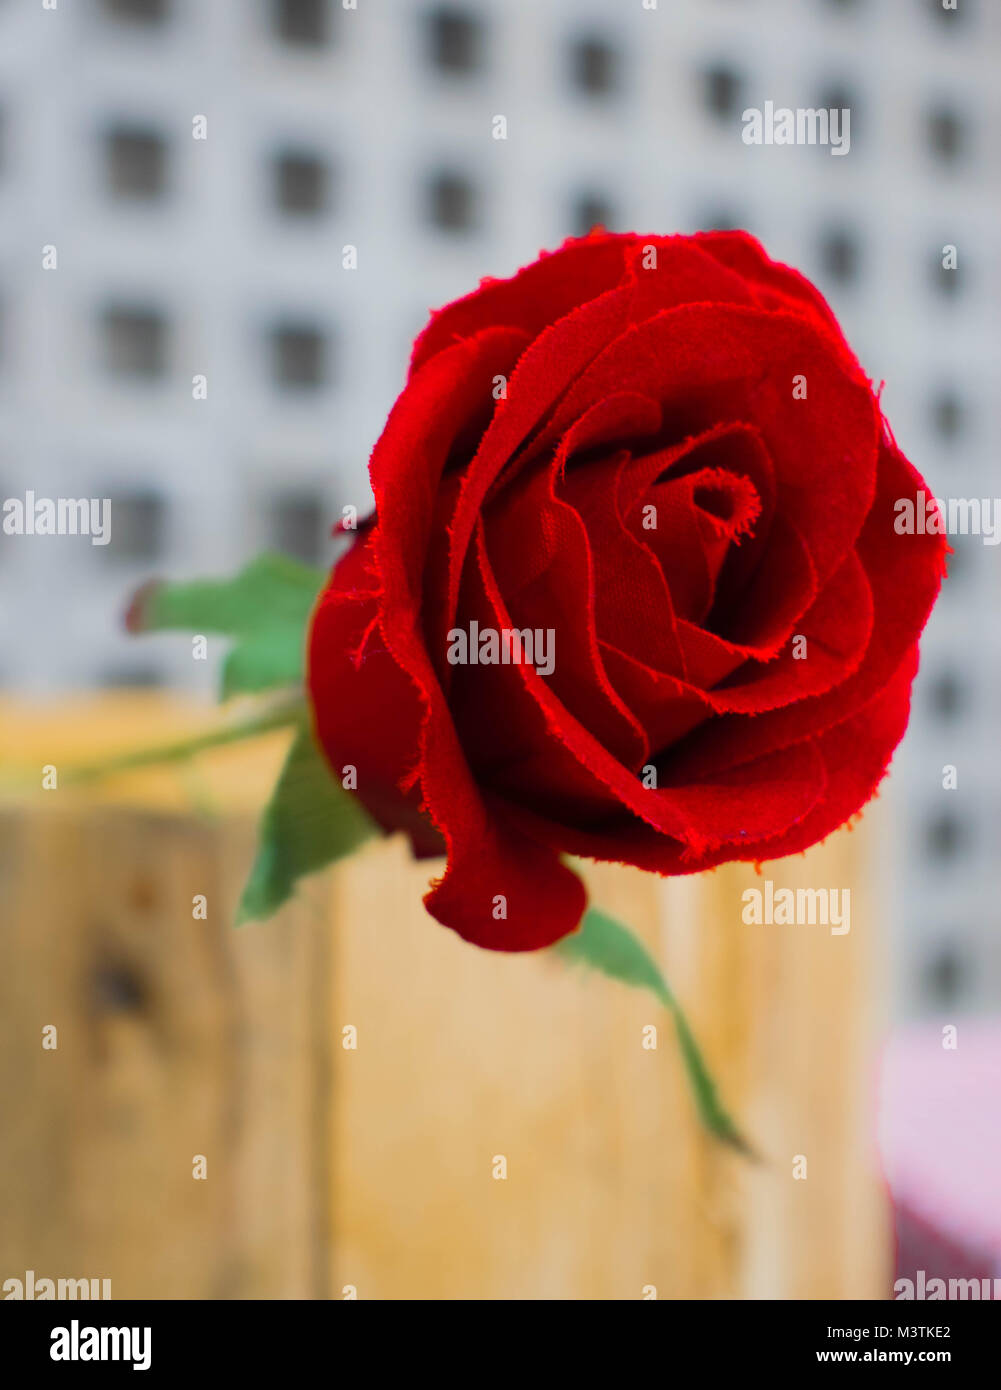 Picture of rose flower - Stock Image